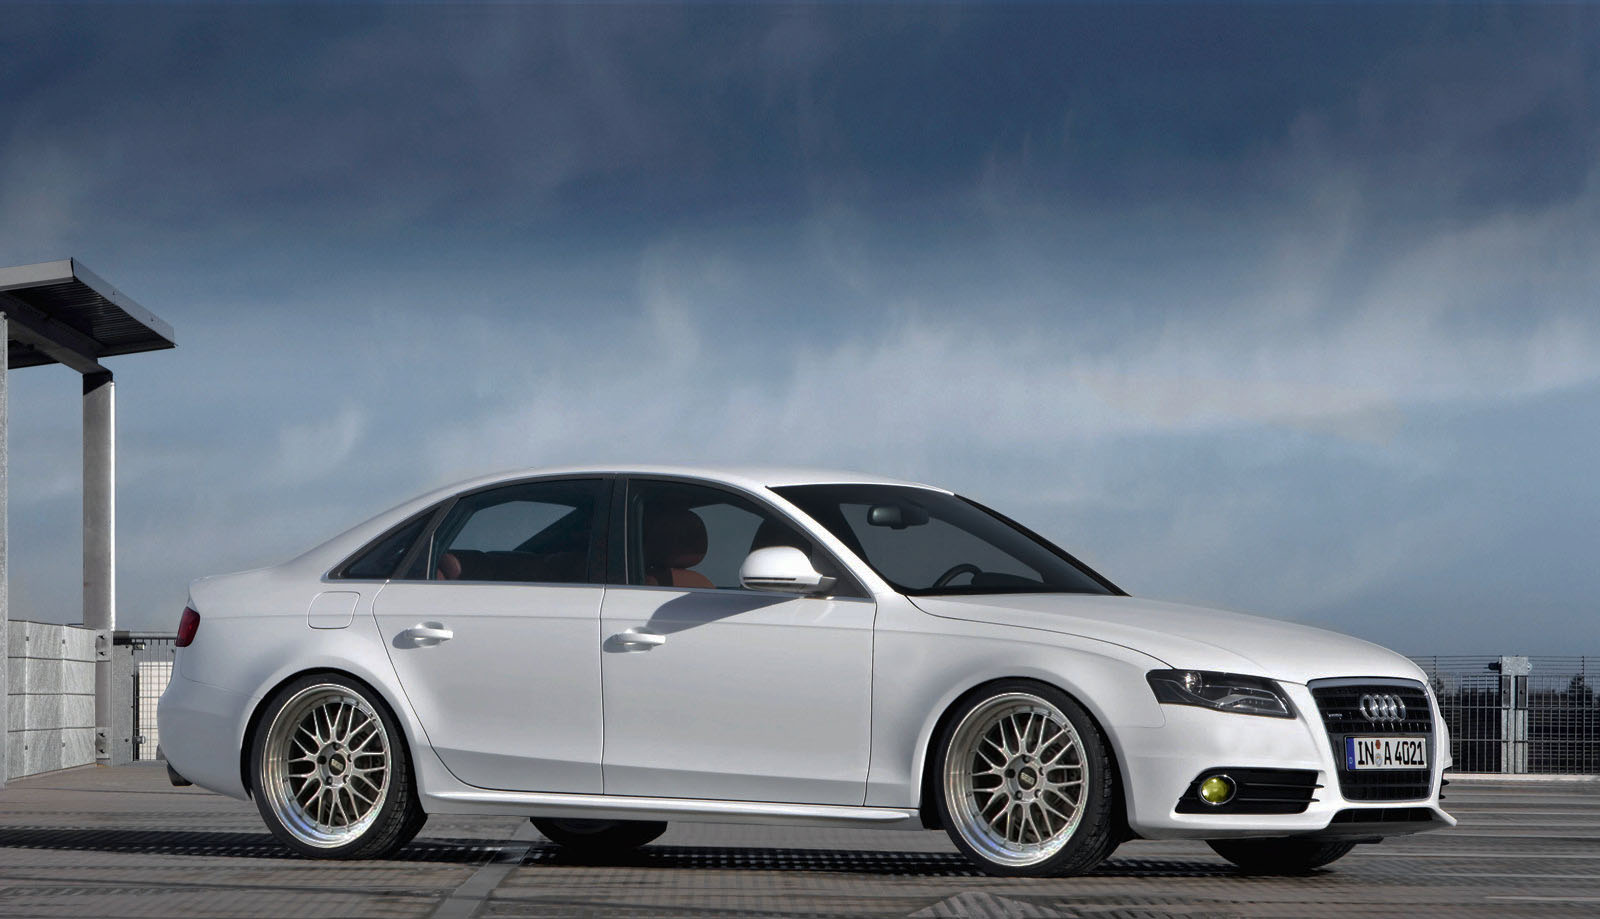 Audi A4 B8 By Apexi957 On Deviantart